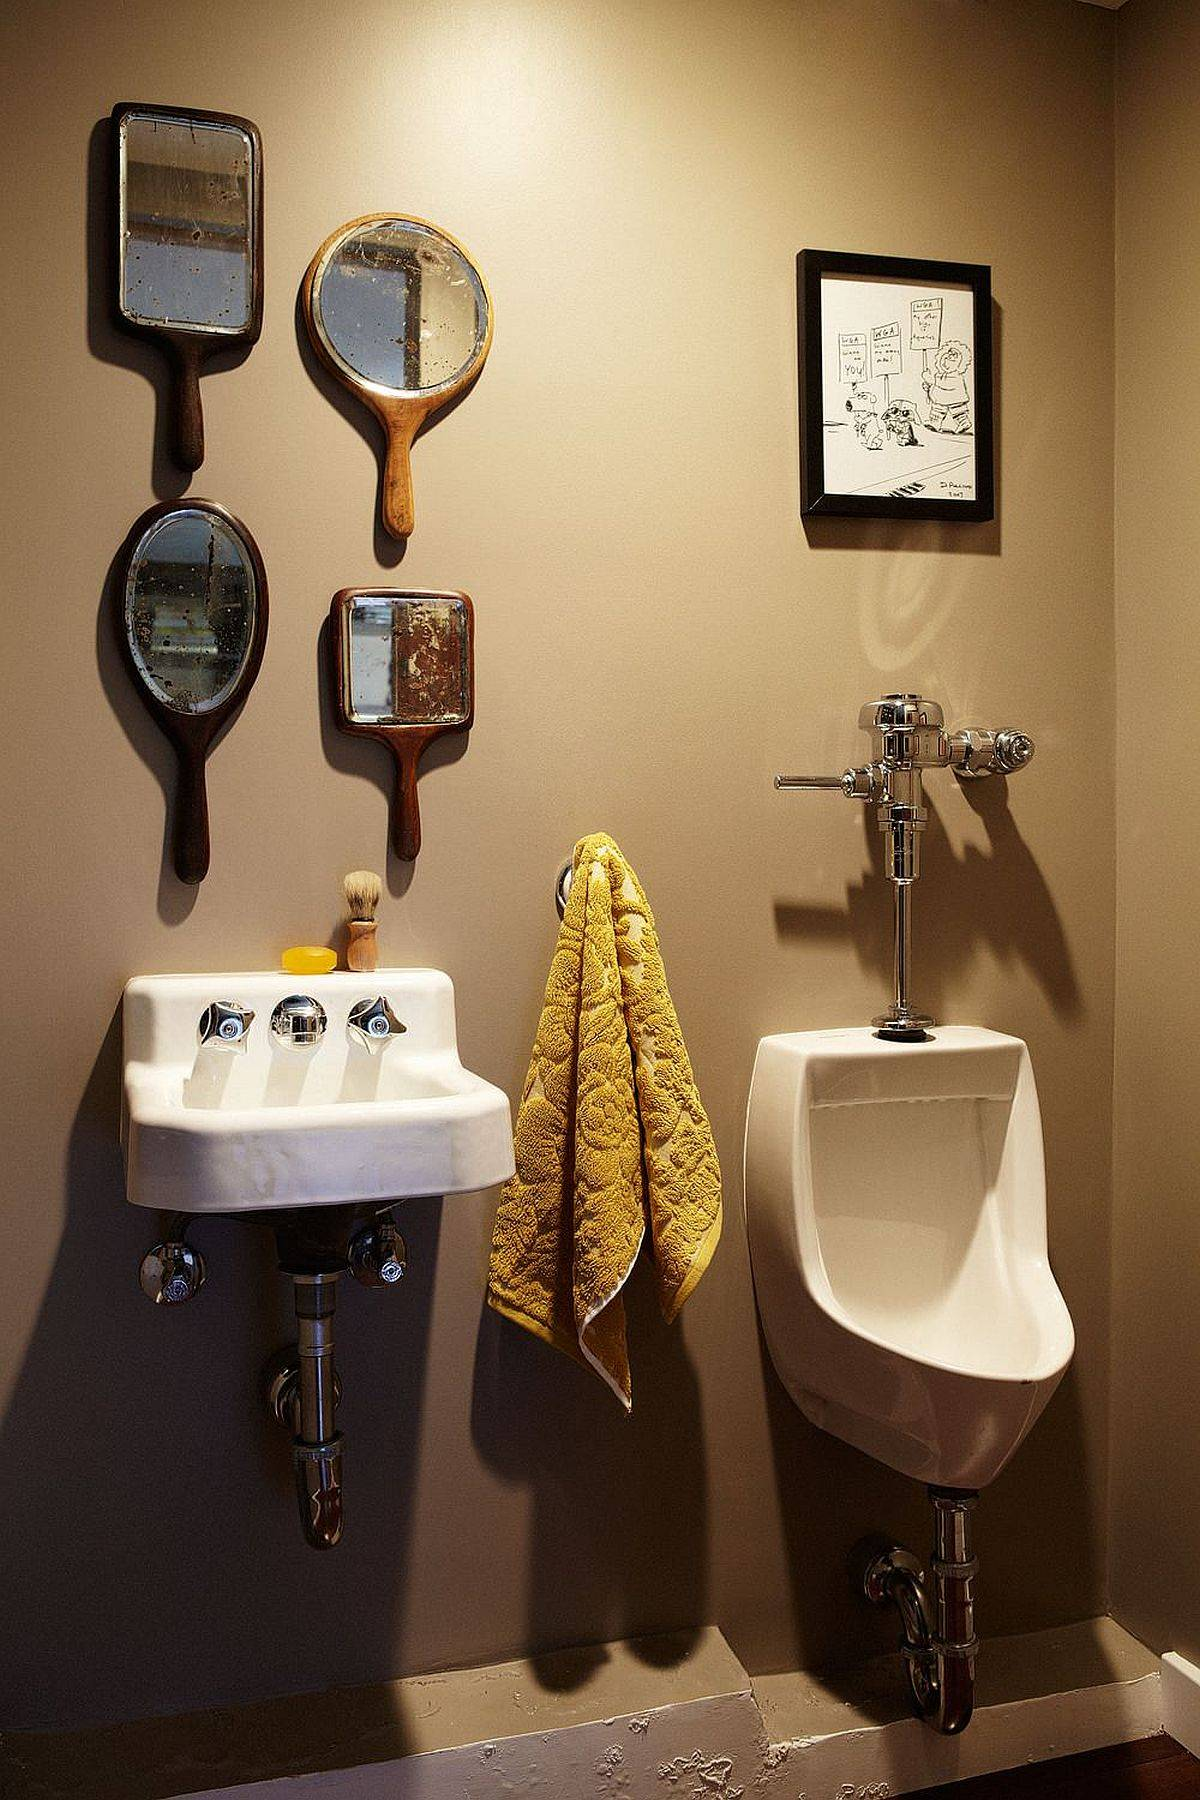 Eclectic-powder-rooms-need-not-always-be-flooded-iwth-color-51321